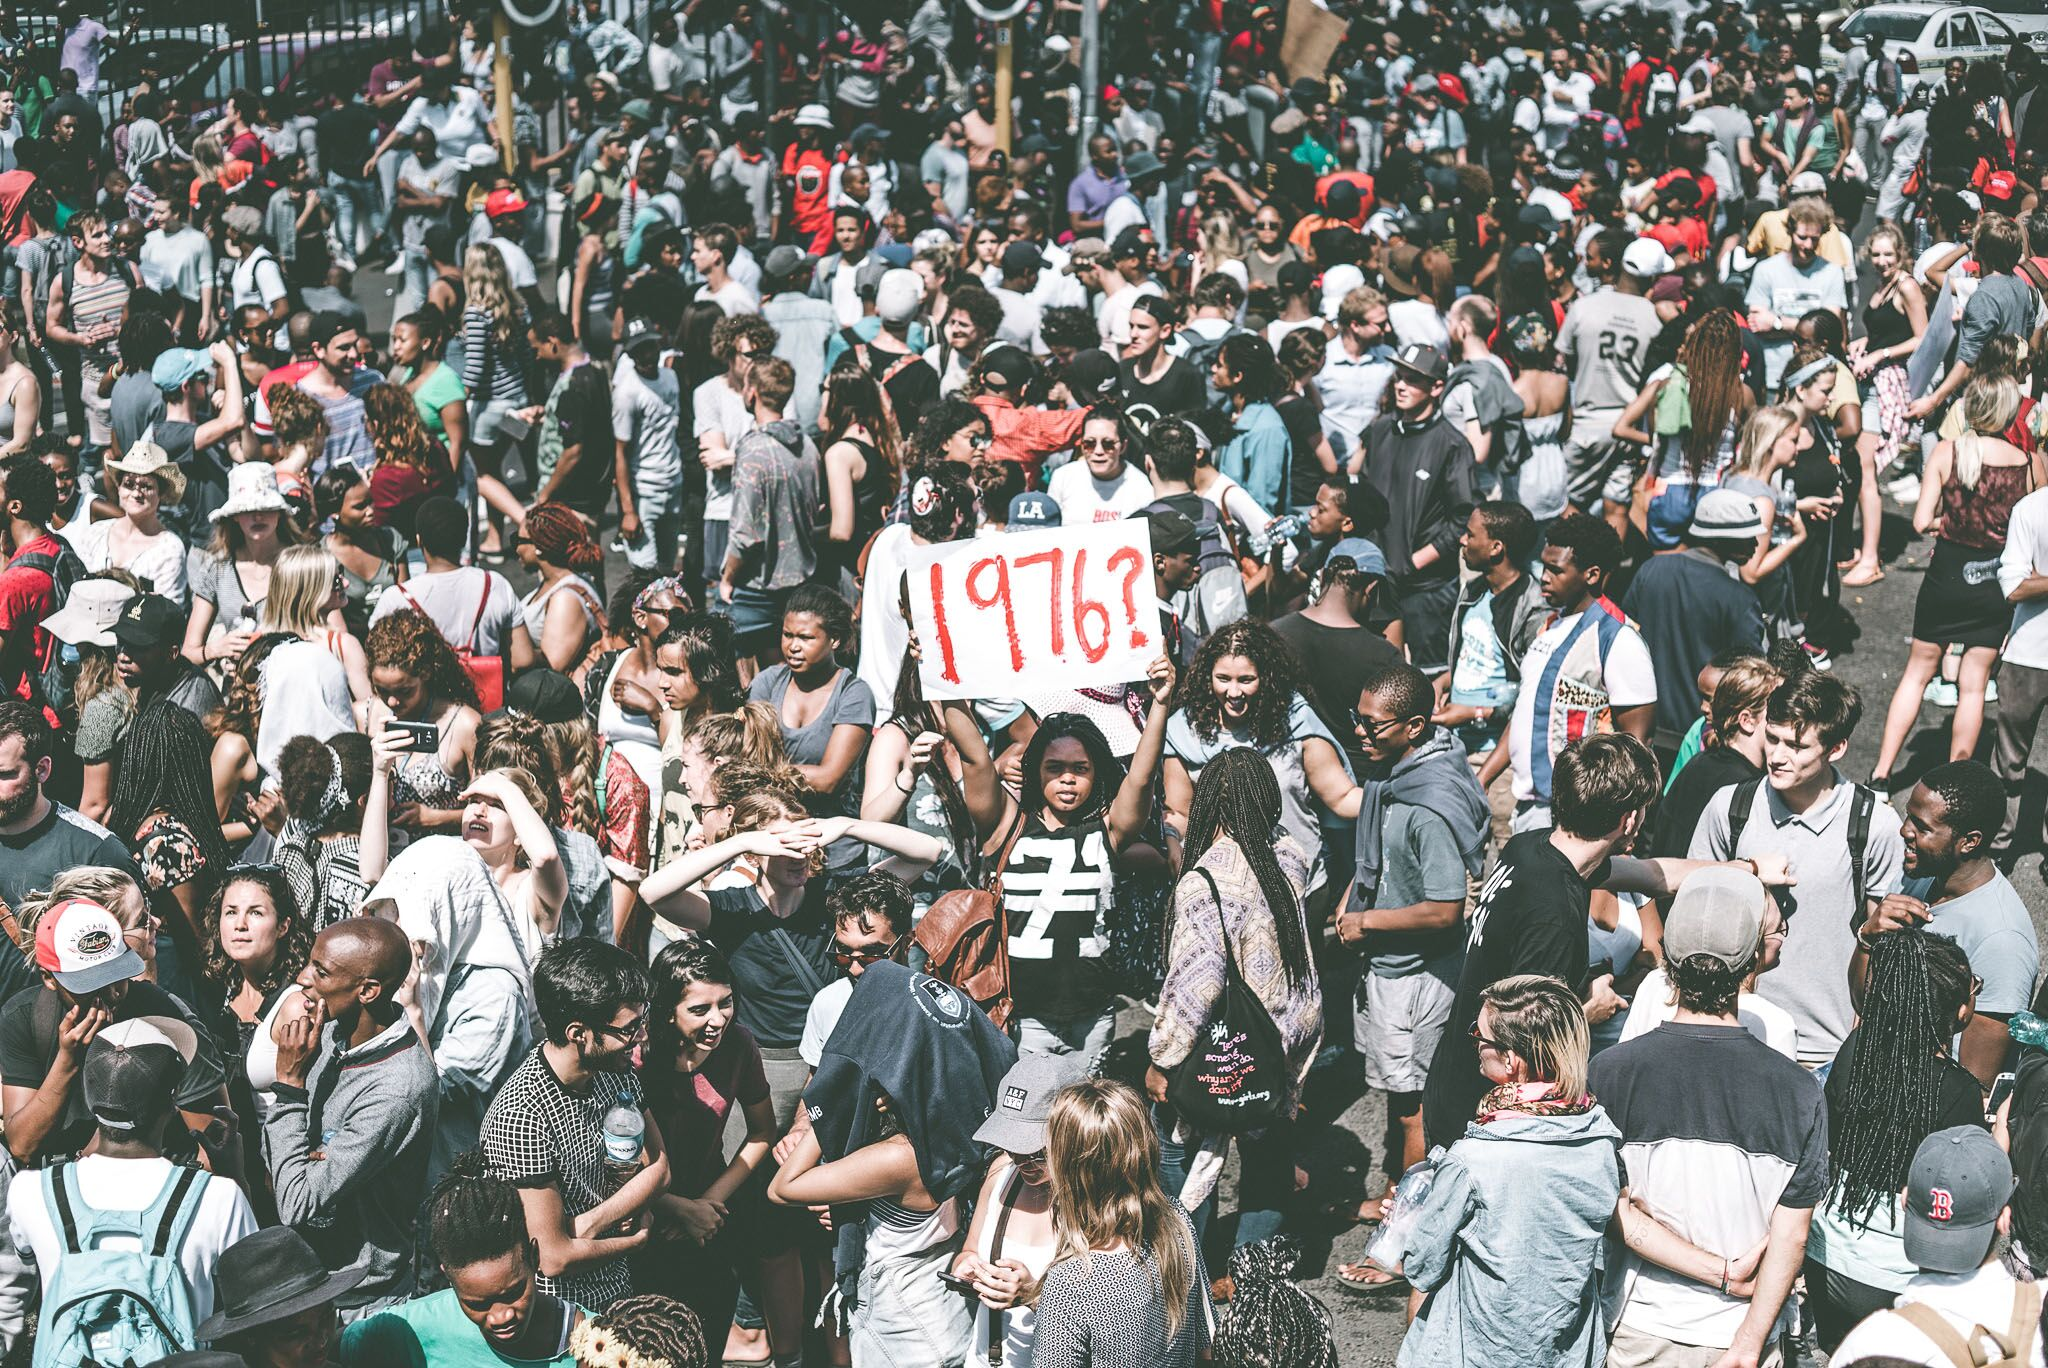 South African photographer Imraan Christian on why #FeesMustFall was just the beginning - The World (BBC/WGBH/PRI)